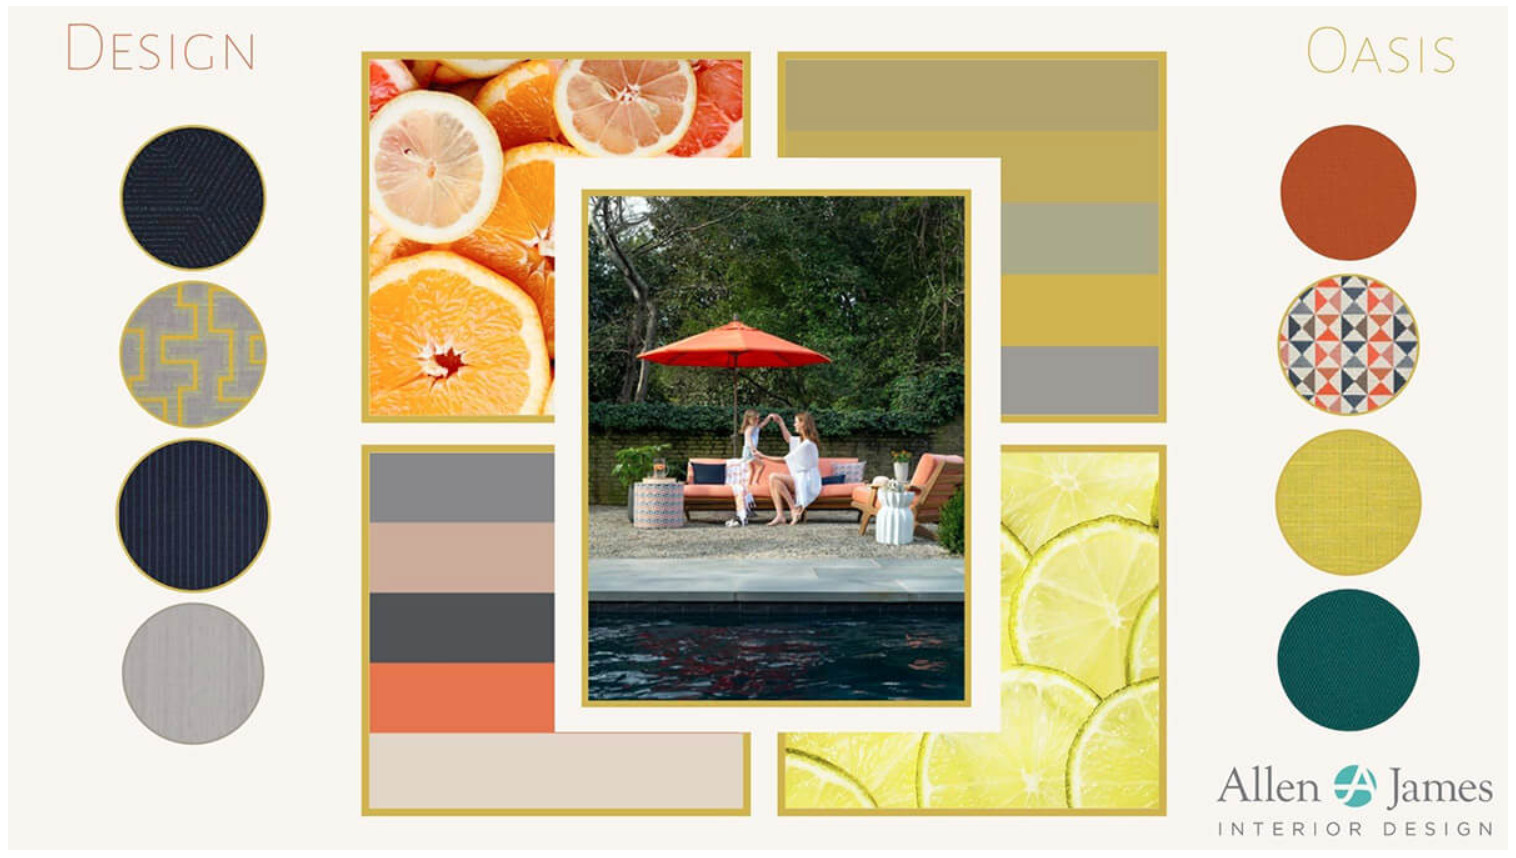 This spring-inspired mood board by Allen & James Interior Designs is full of warm vibes for this season.